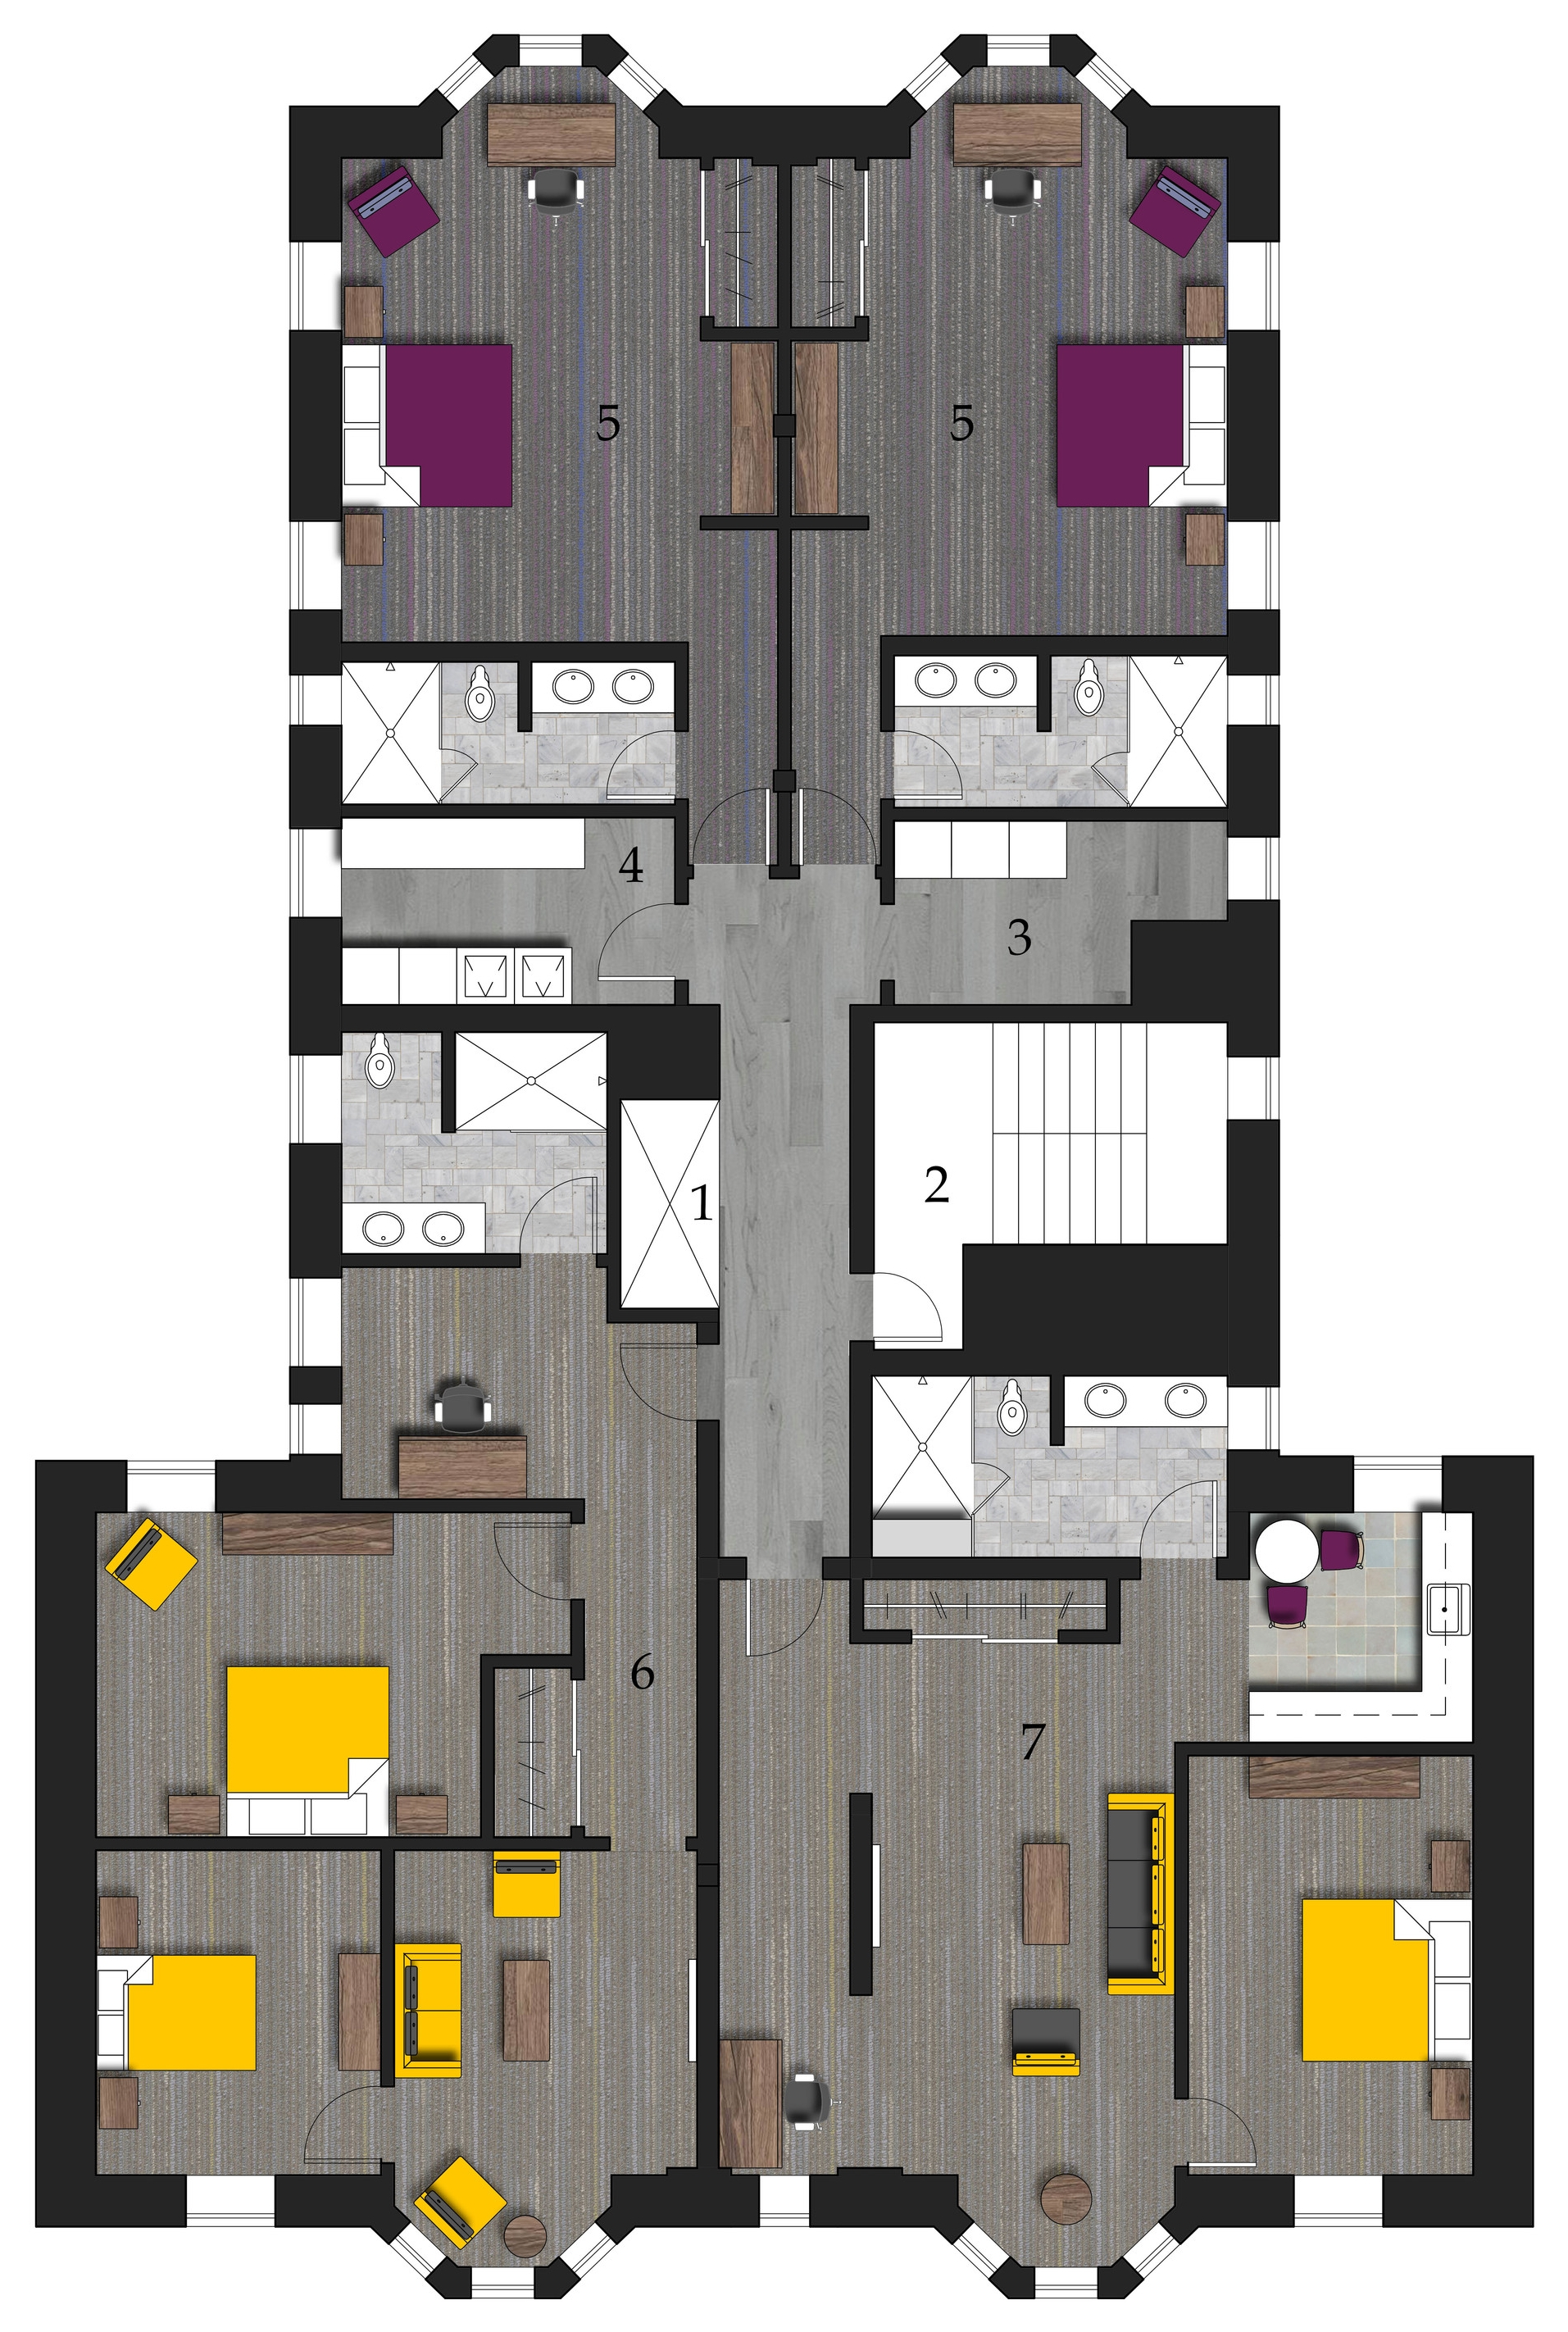 Typical Guest Floor Plan   1.Elevator 2.Emergency Stairs 3.Vending & Ice4.Laundry & Storage 5.Standard Guest Room 6.Multi-Guest Room 7.Deluxe Suite and Extended Stay